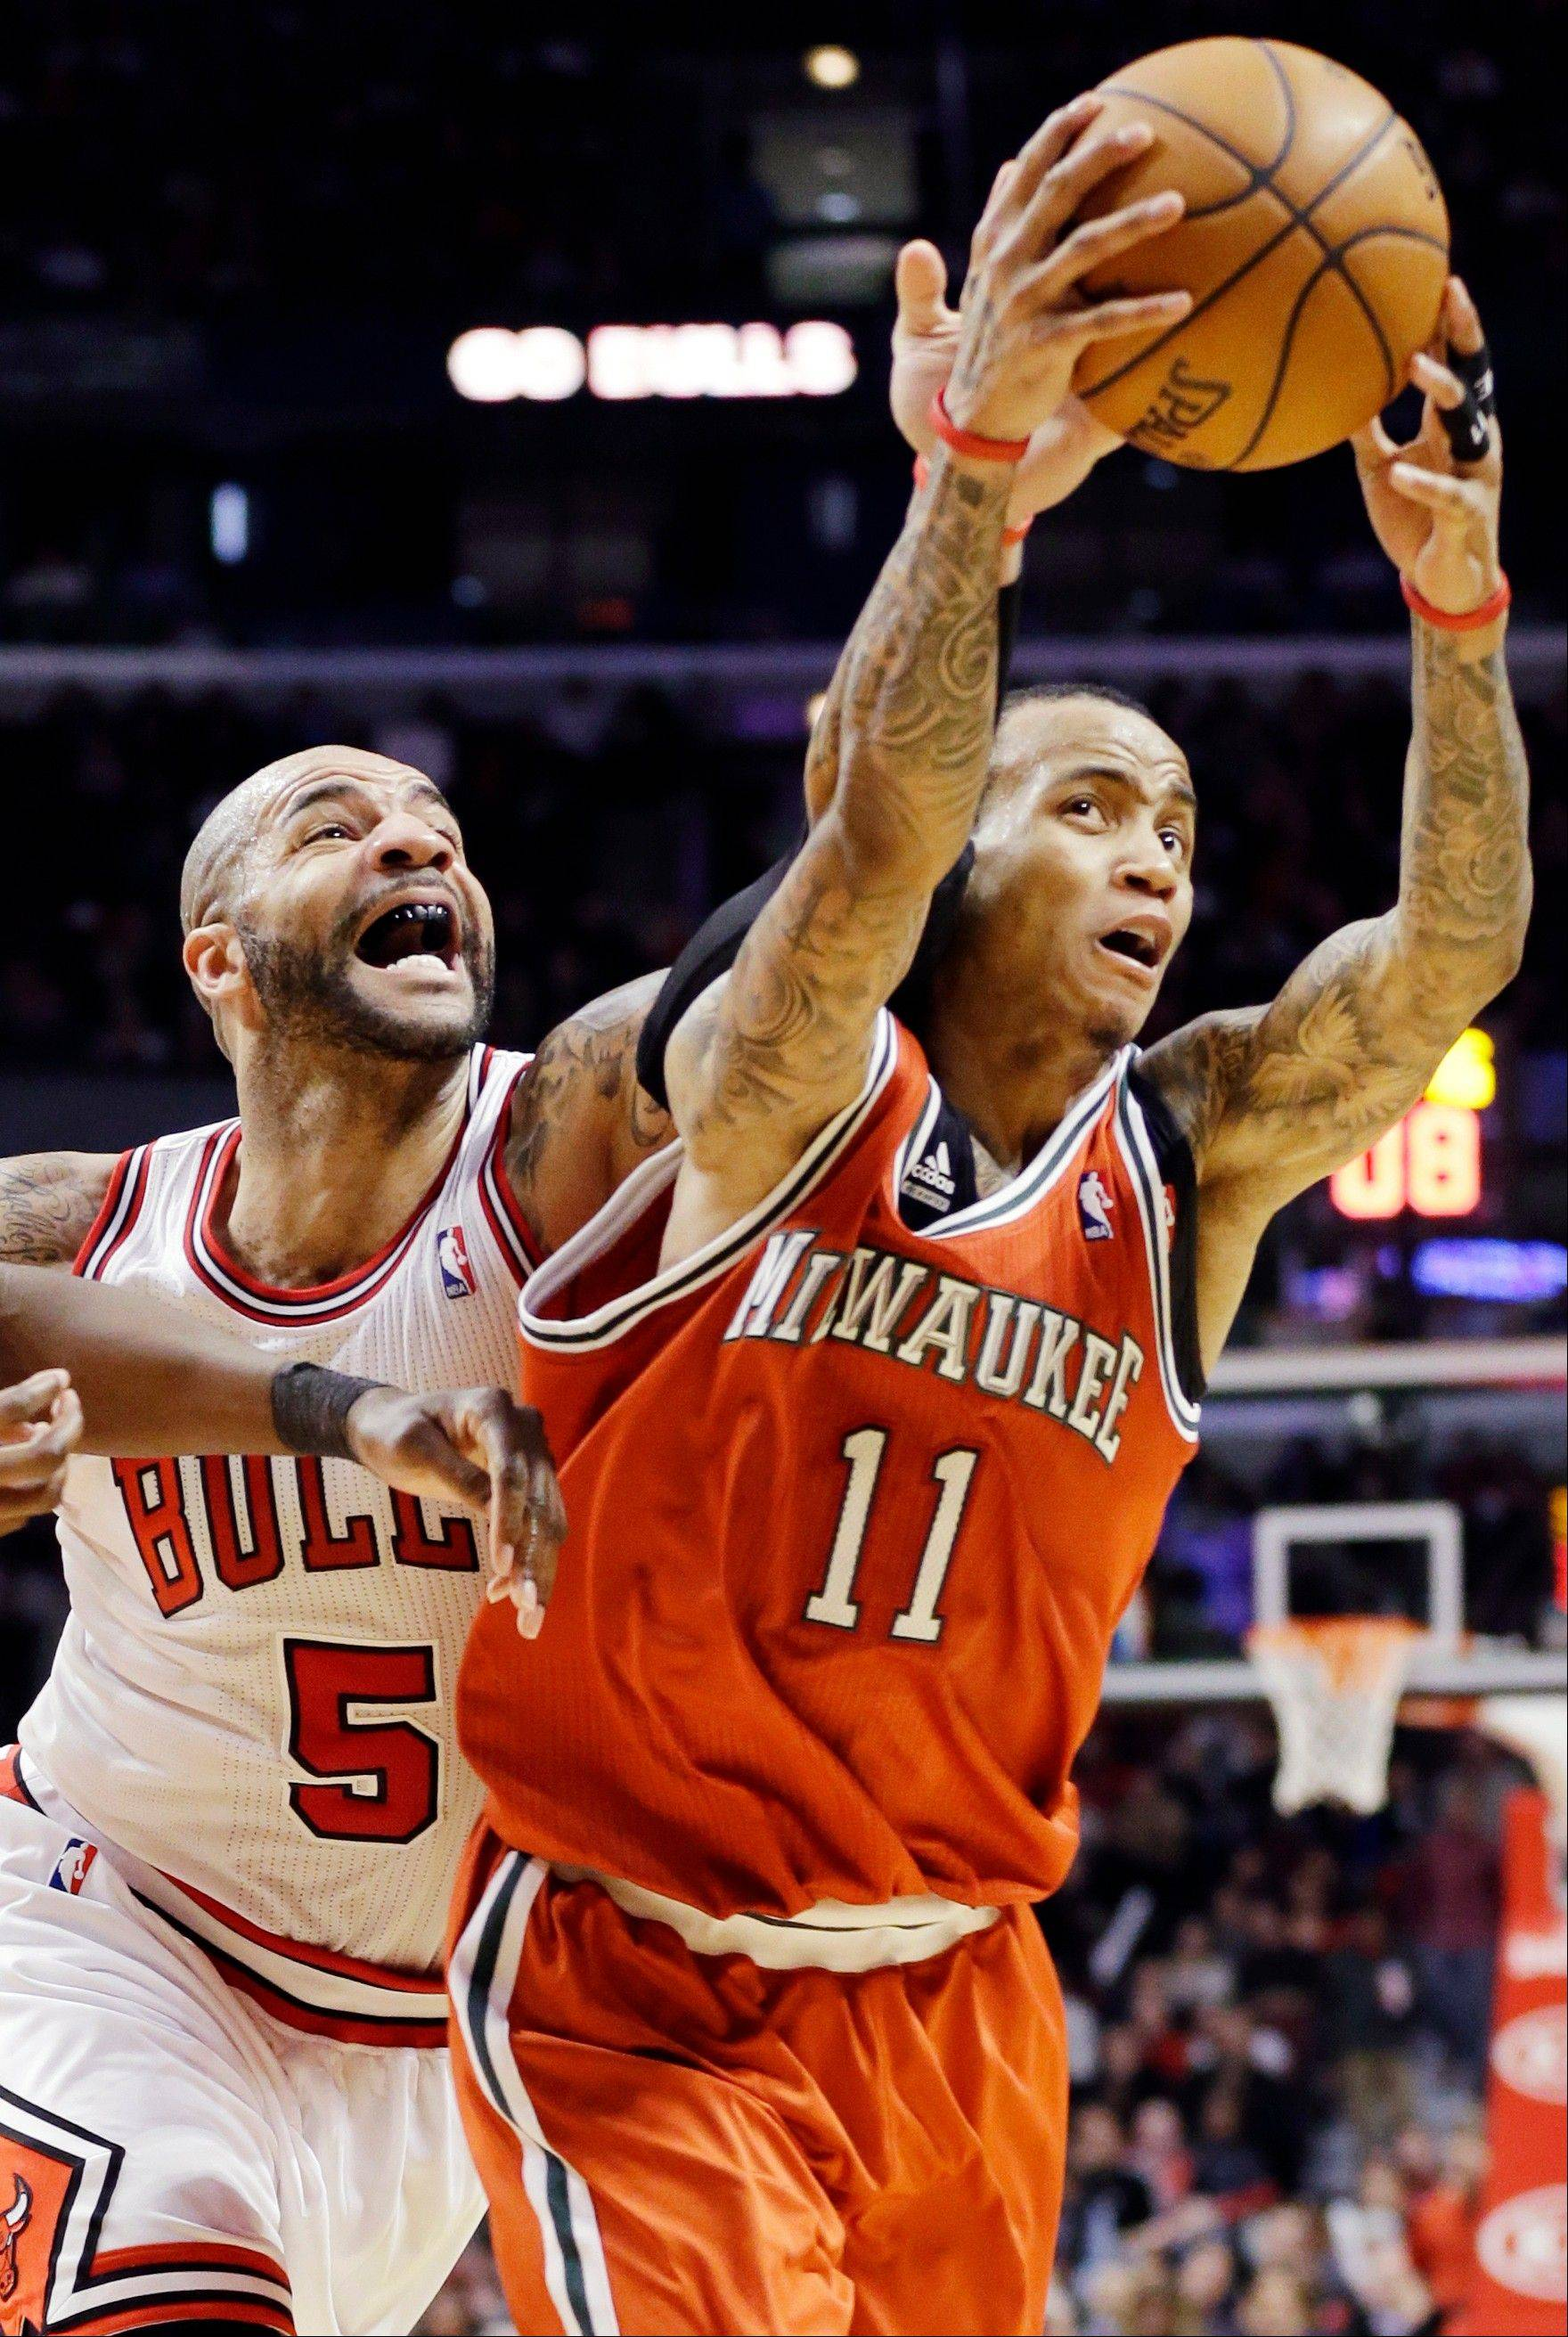 The Bulls' Carlos Boozer battles the Bucks' Monta Ellis for a loose ball.